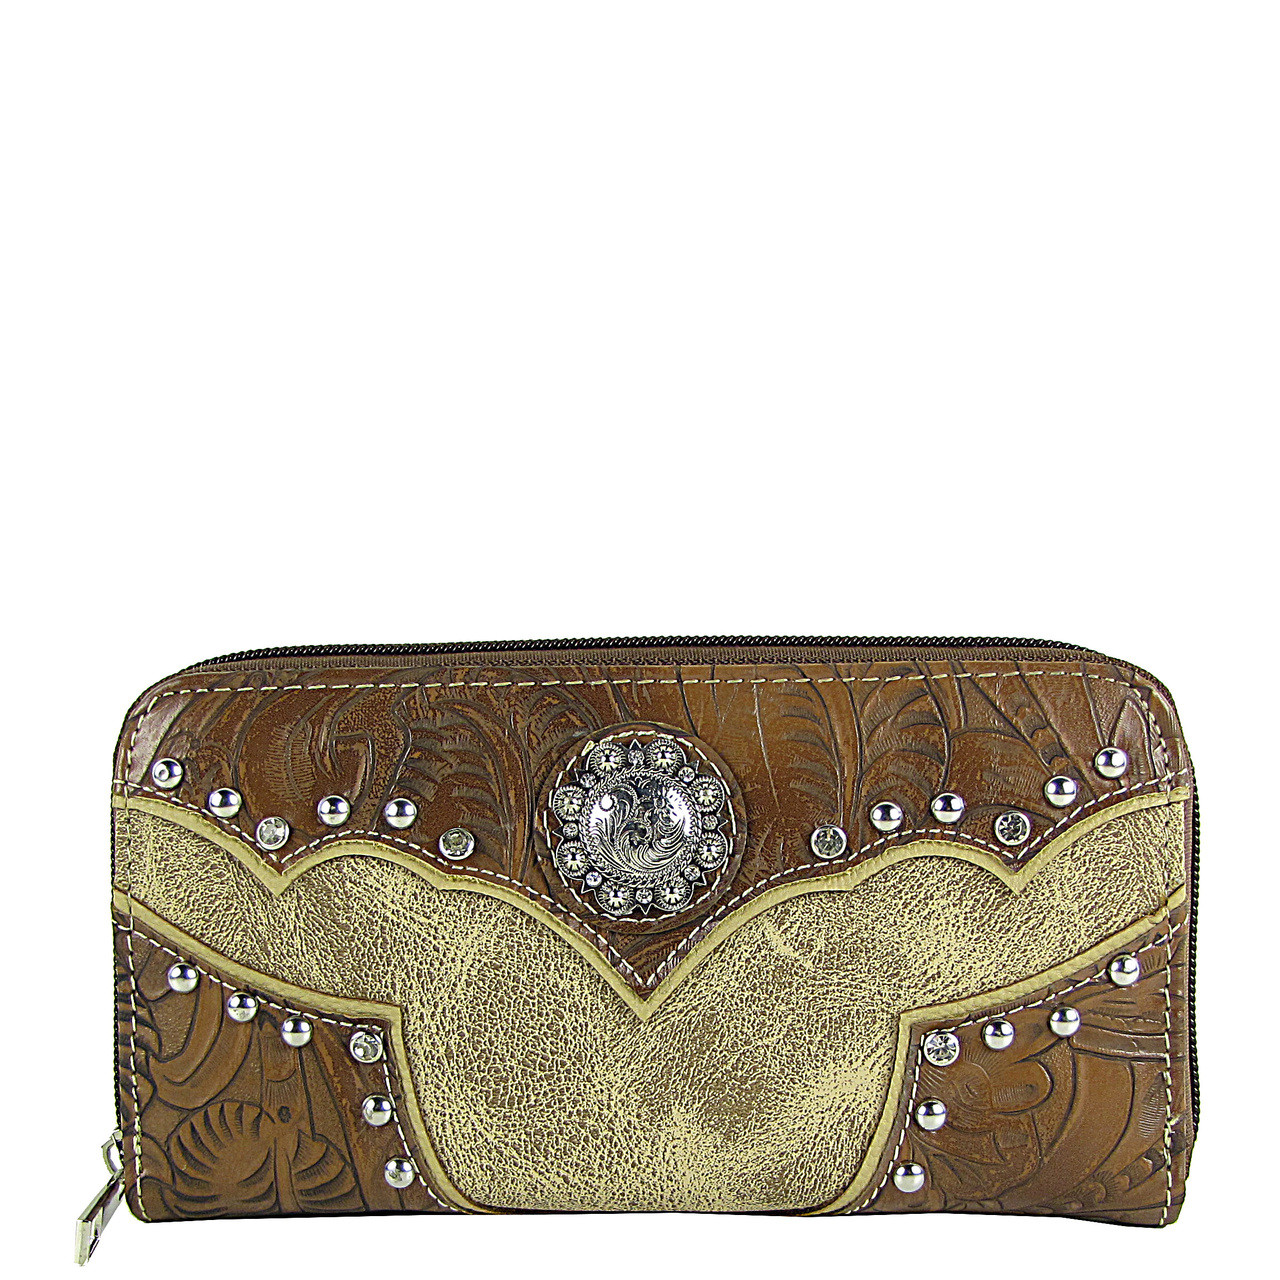 BEIGE WESTERN STUDDED LOOK ZIPPER WALLET CB3-1202BEI